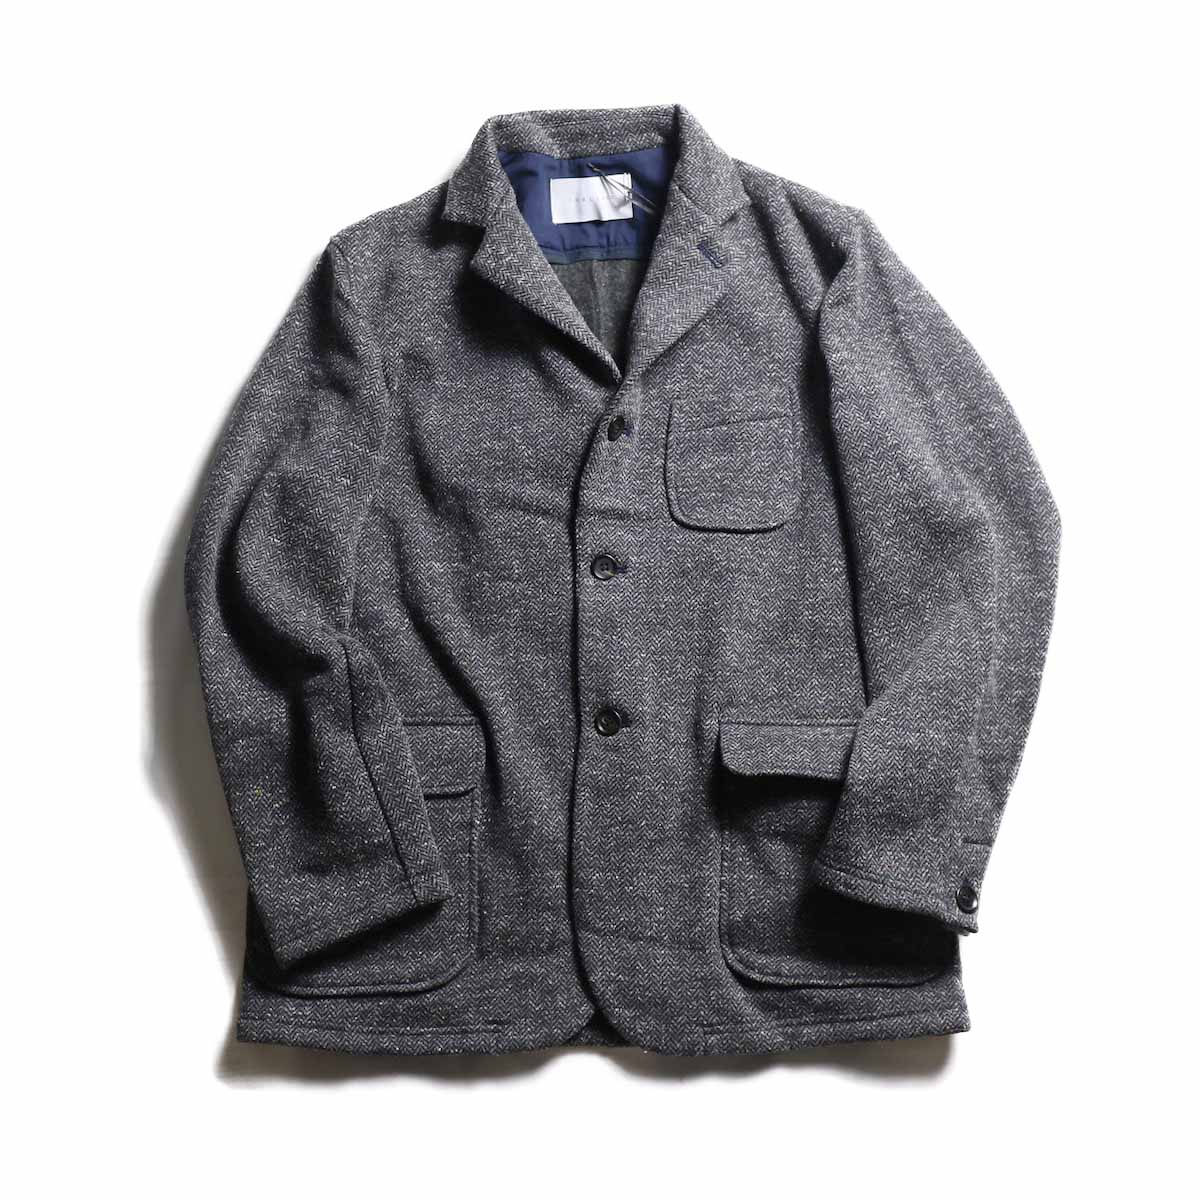 CURLY / Bleecker HB Jacket -NAVY HB